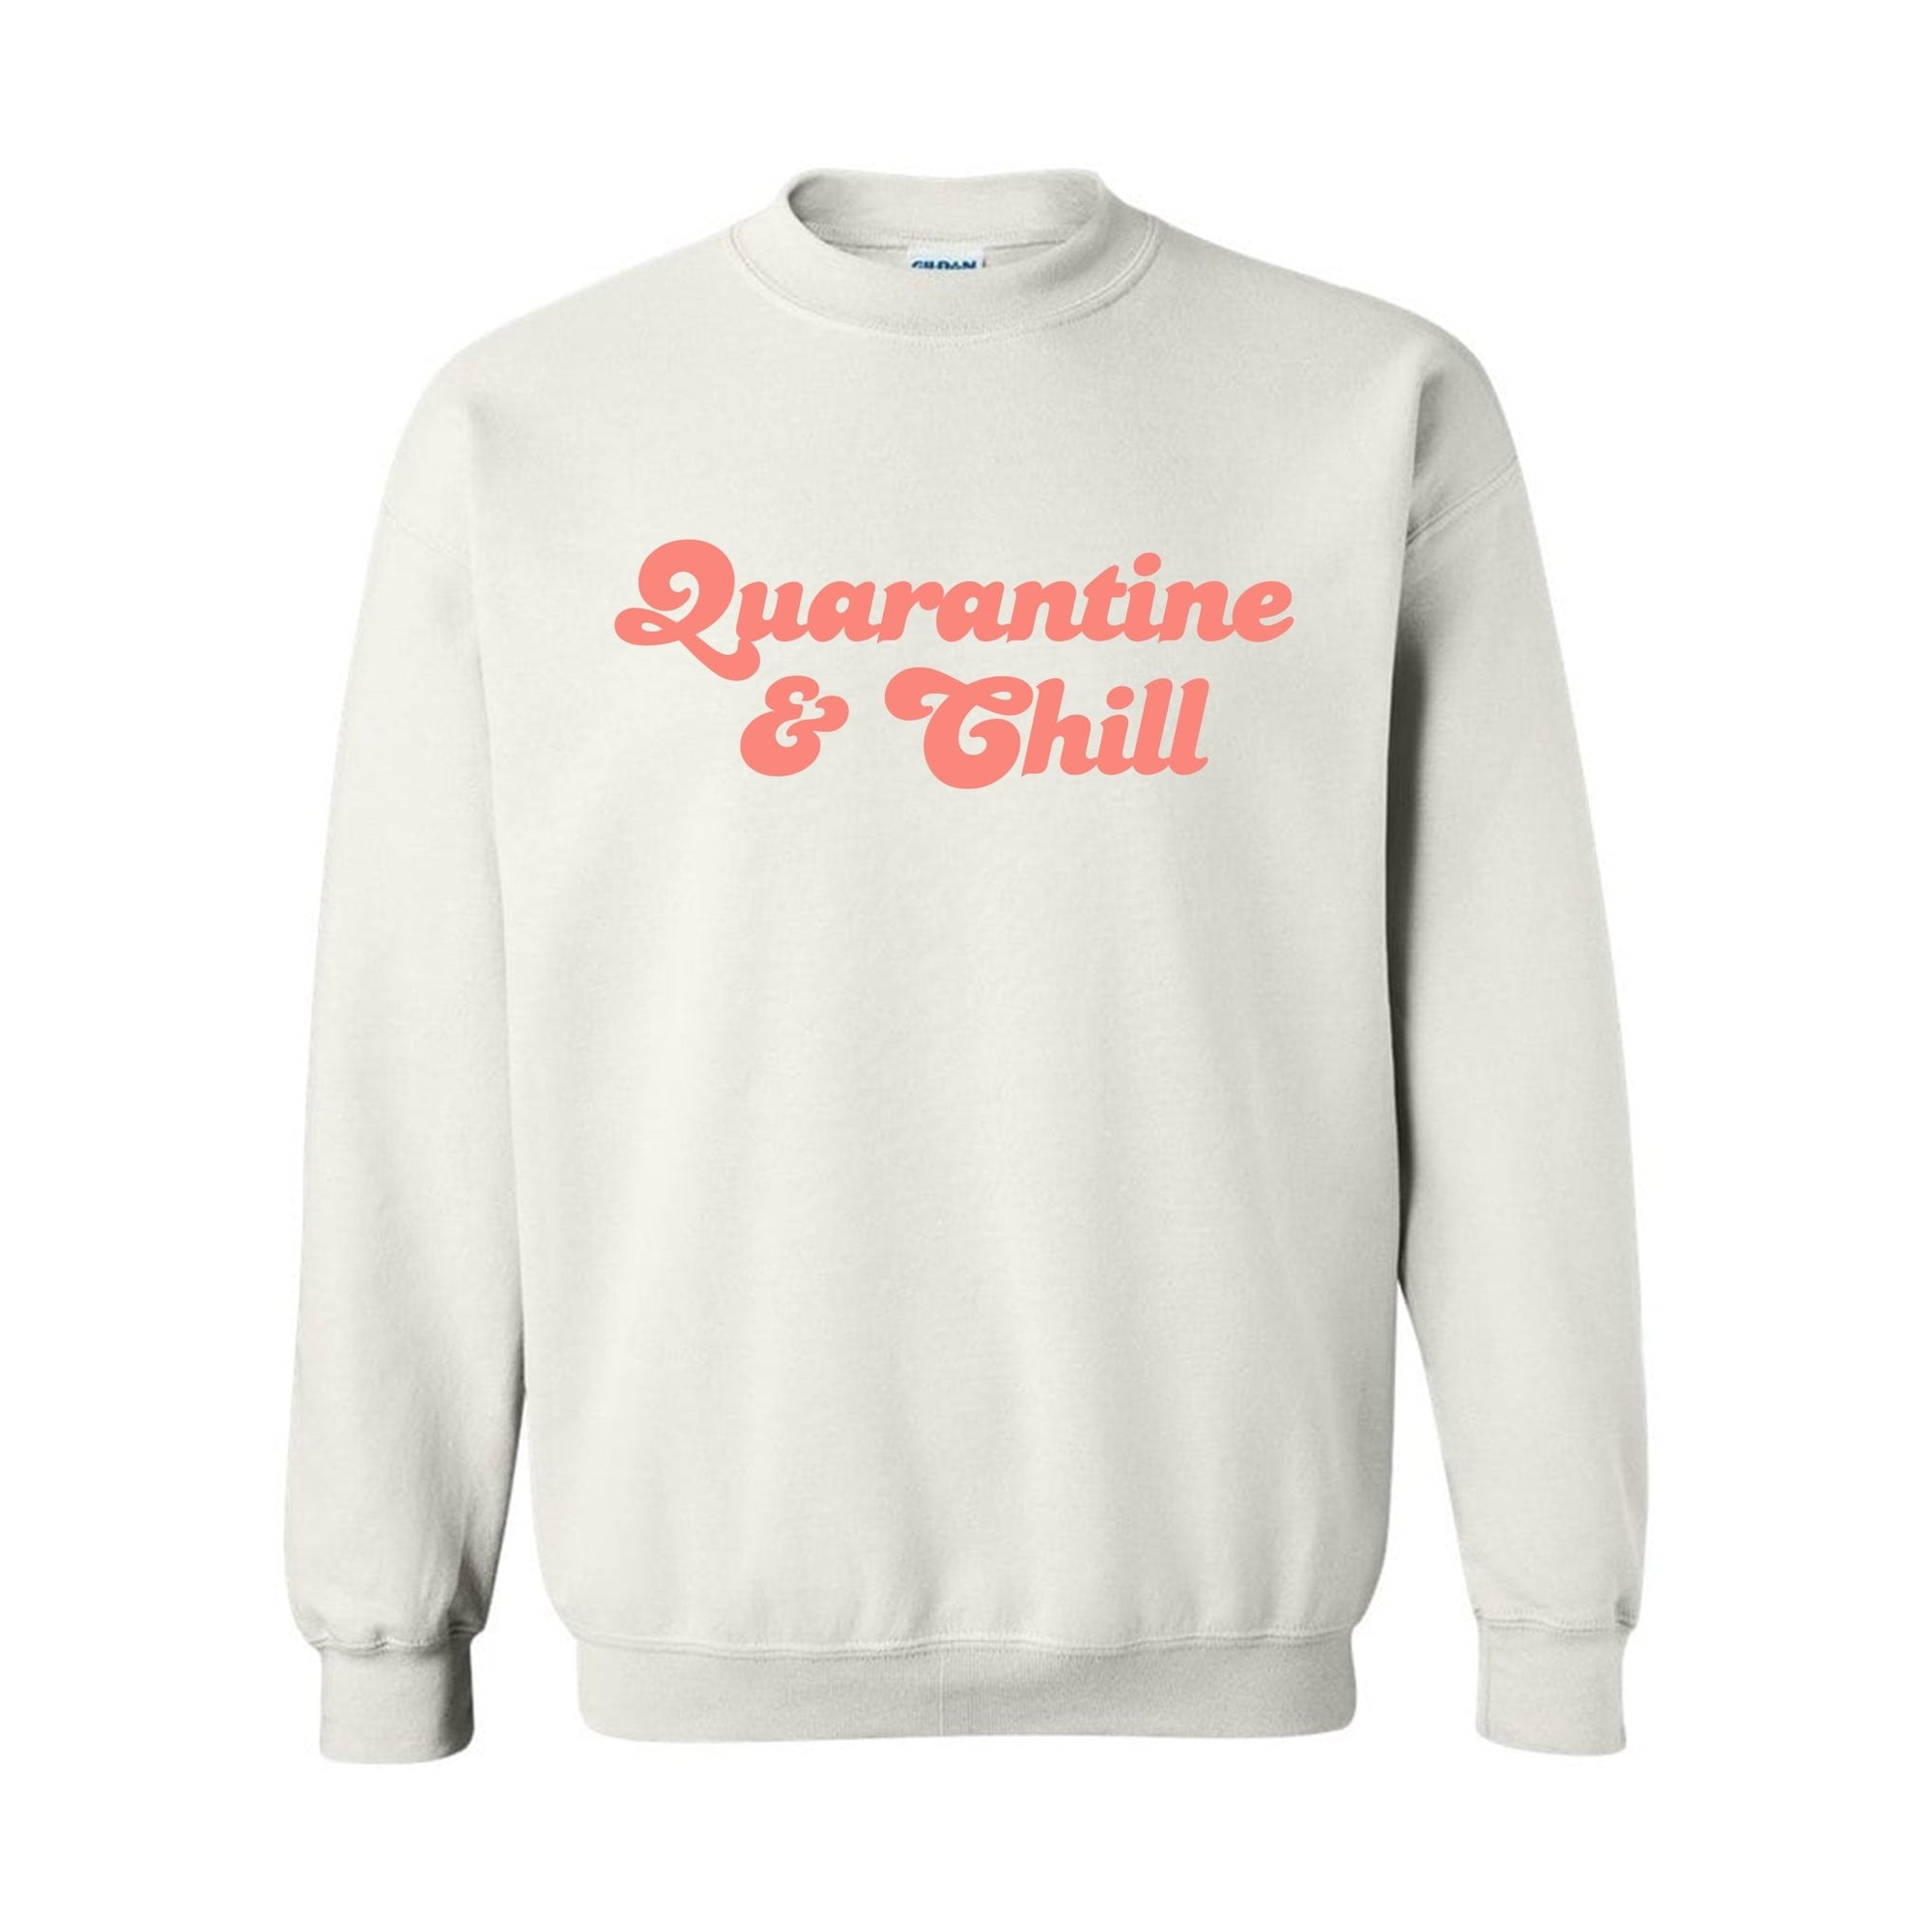 Quarantine & Chill Sweatshirt - Sprinkled With Pink #bachelorette #custom #gifts